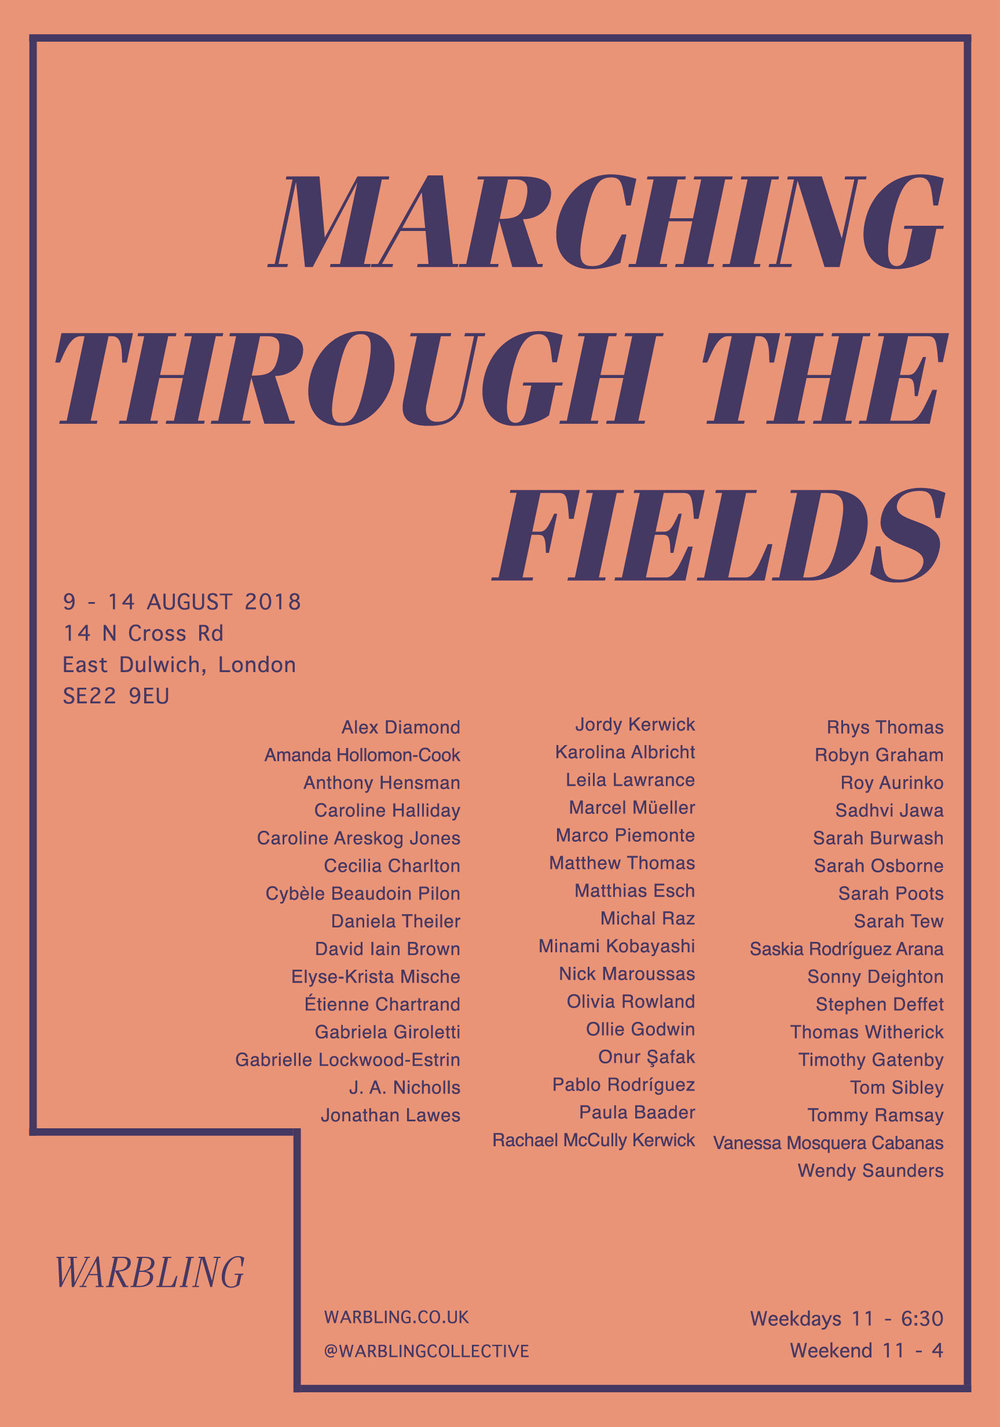 MARCHINGTHROUGHTHEFIELDS-POSTER copy 2.jpg